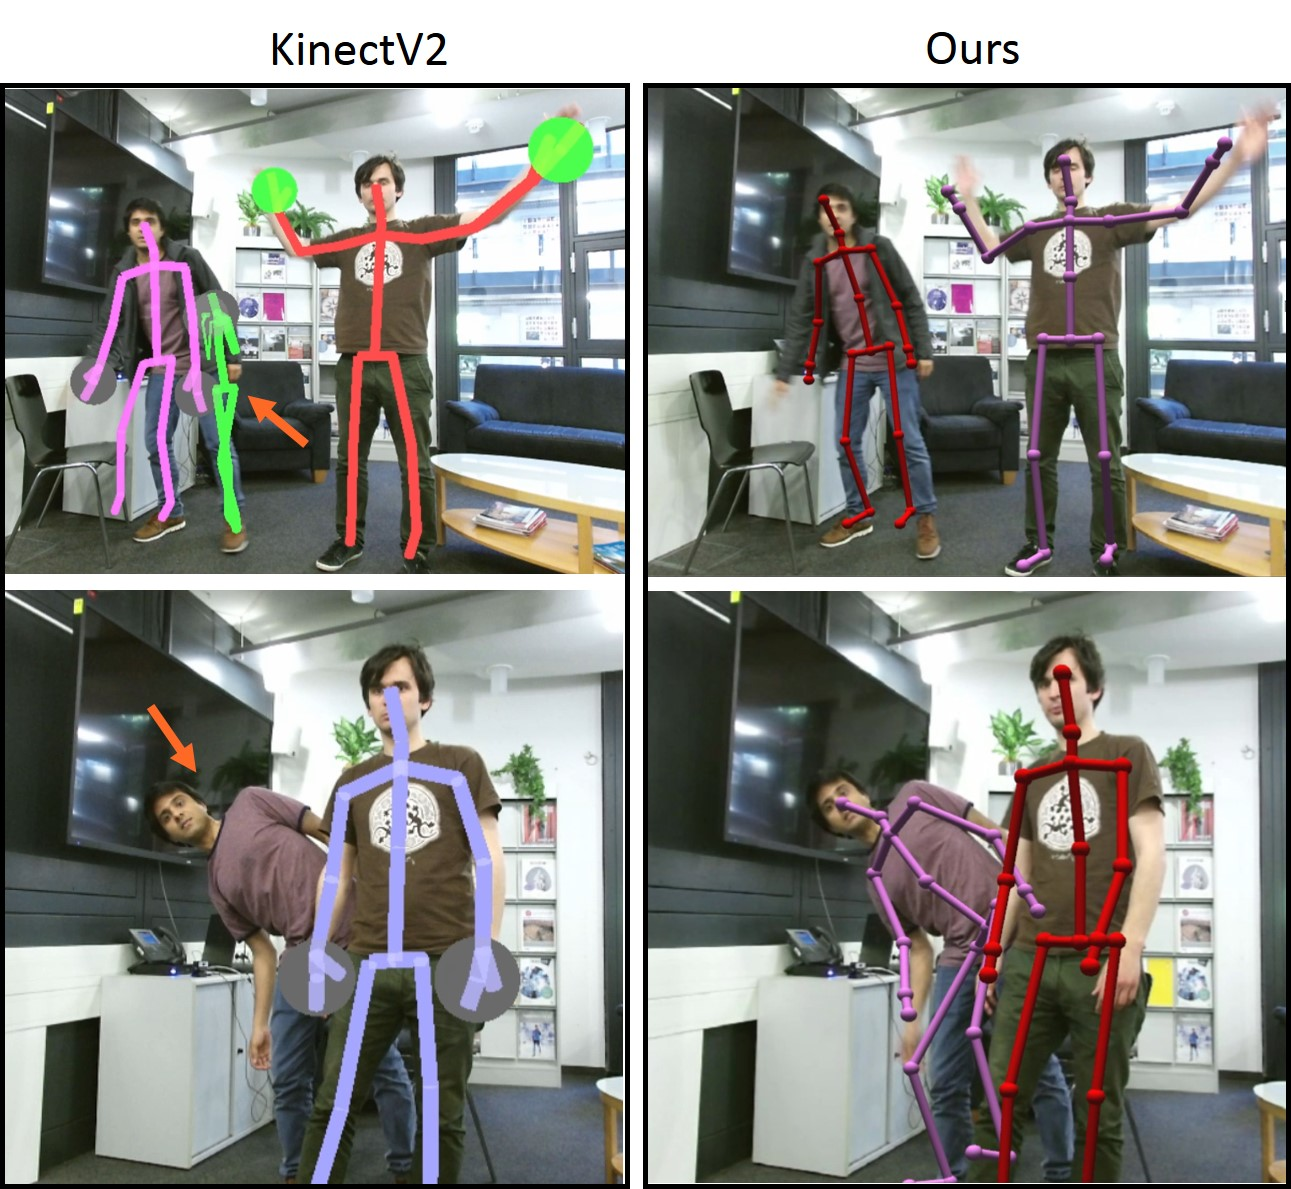 The quality of our pose estimates is comparable to depth sensing based approaches such as KinectV2, and our system handles certain cases of significant inter-personal overlap and cluttered scenes better than KinectV2. In the top row, due to scene clutter, KinectV2 predicts multiple skeletons for one subject. In the bottom row, the person at the back with lower body occlusion is not detected by KinectV2.